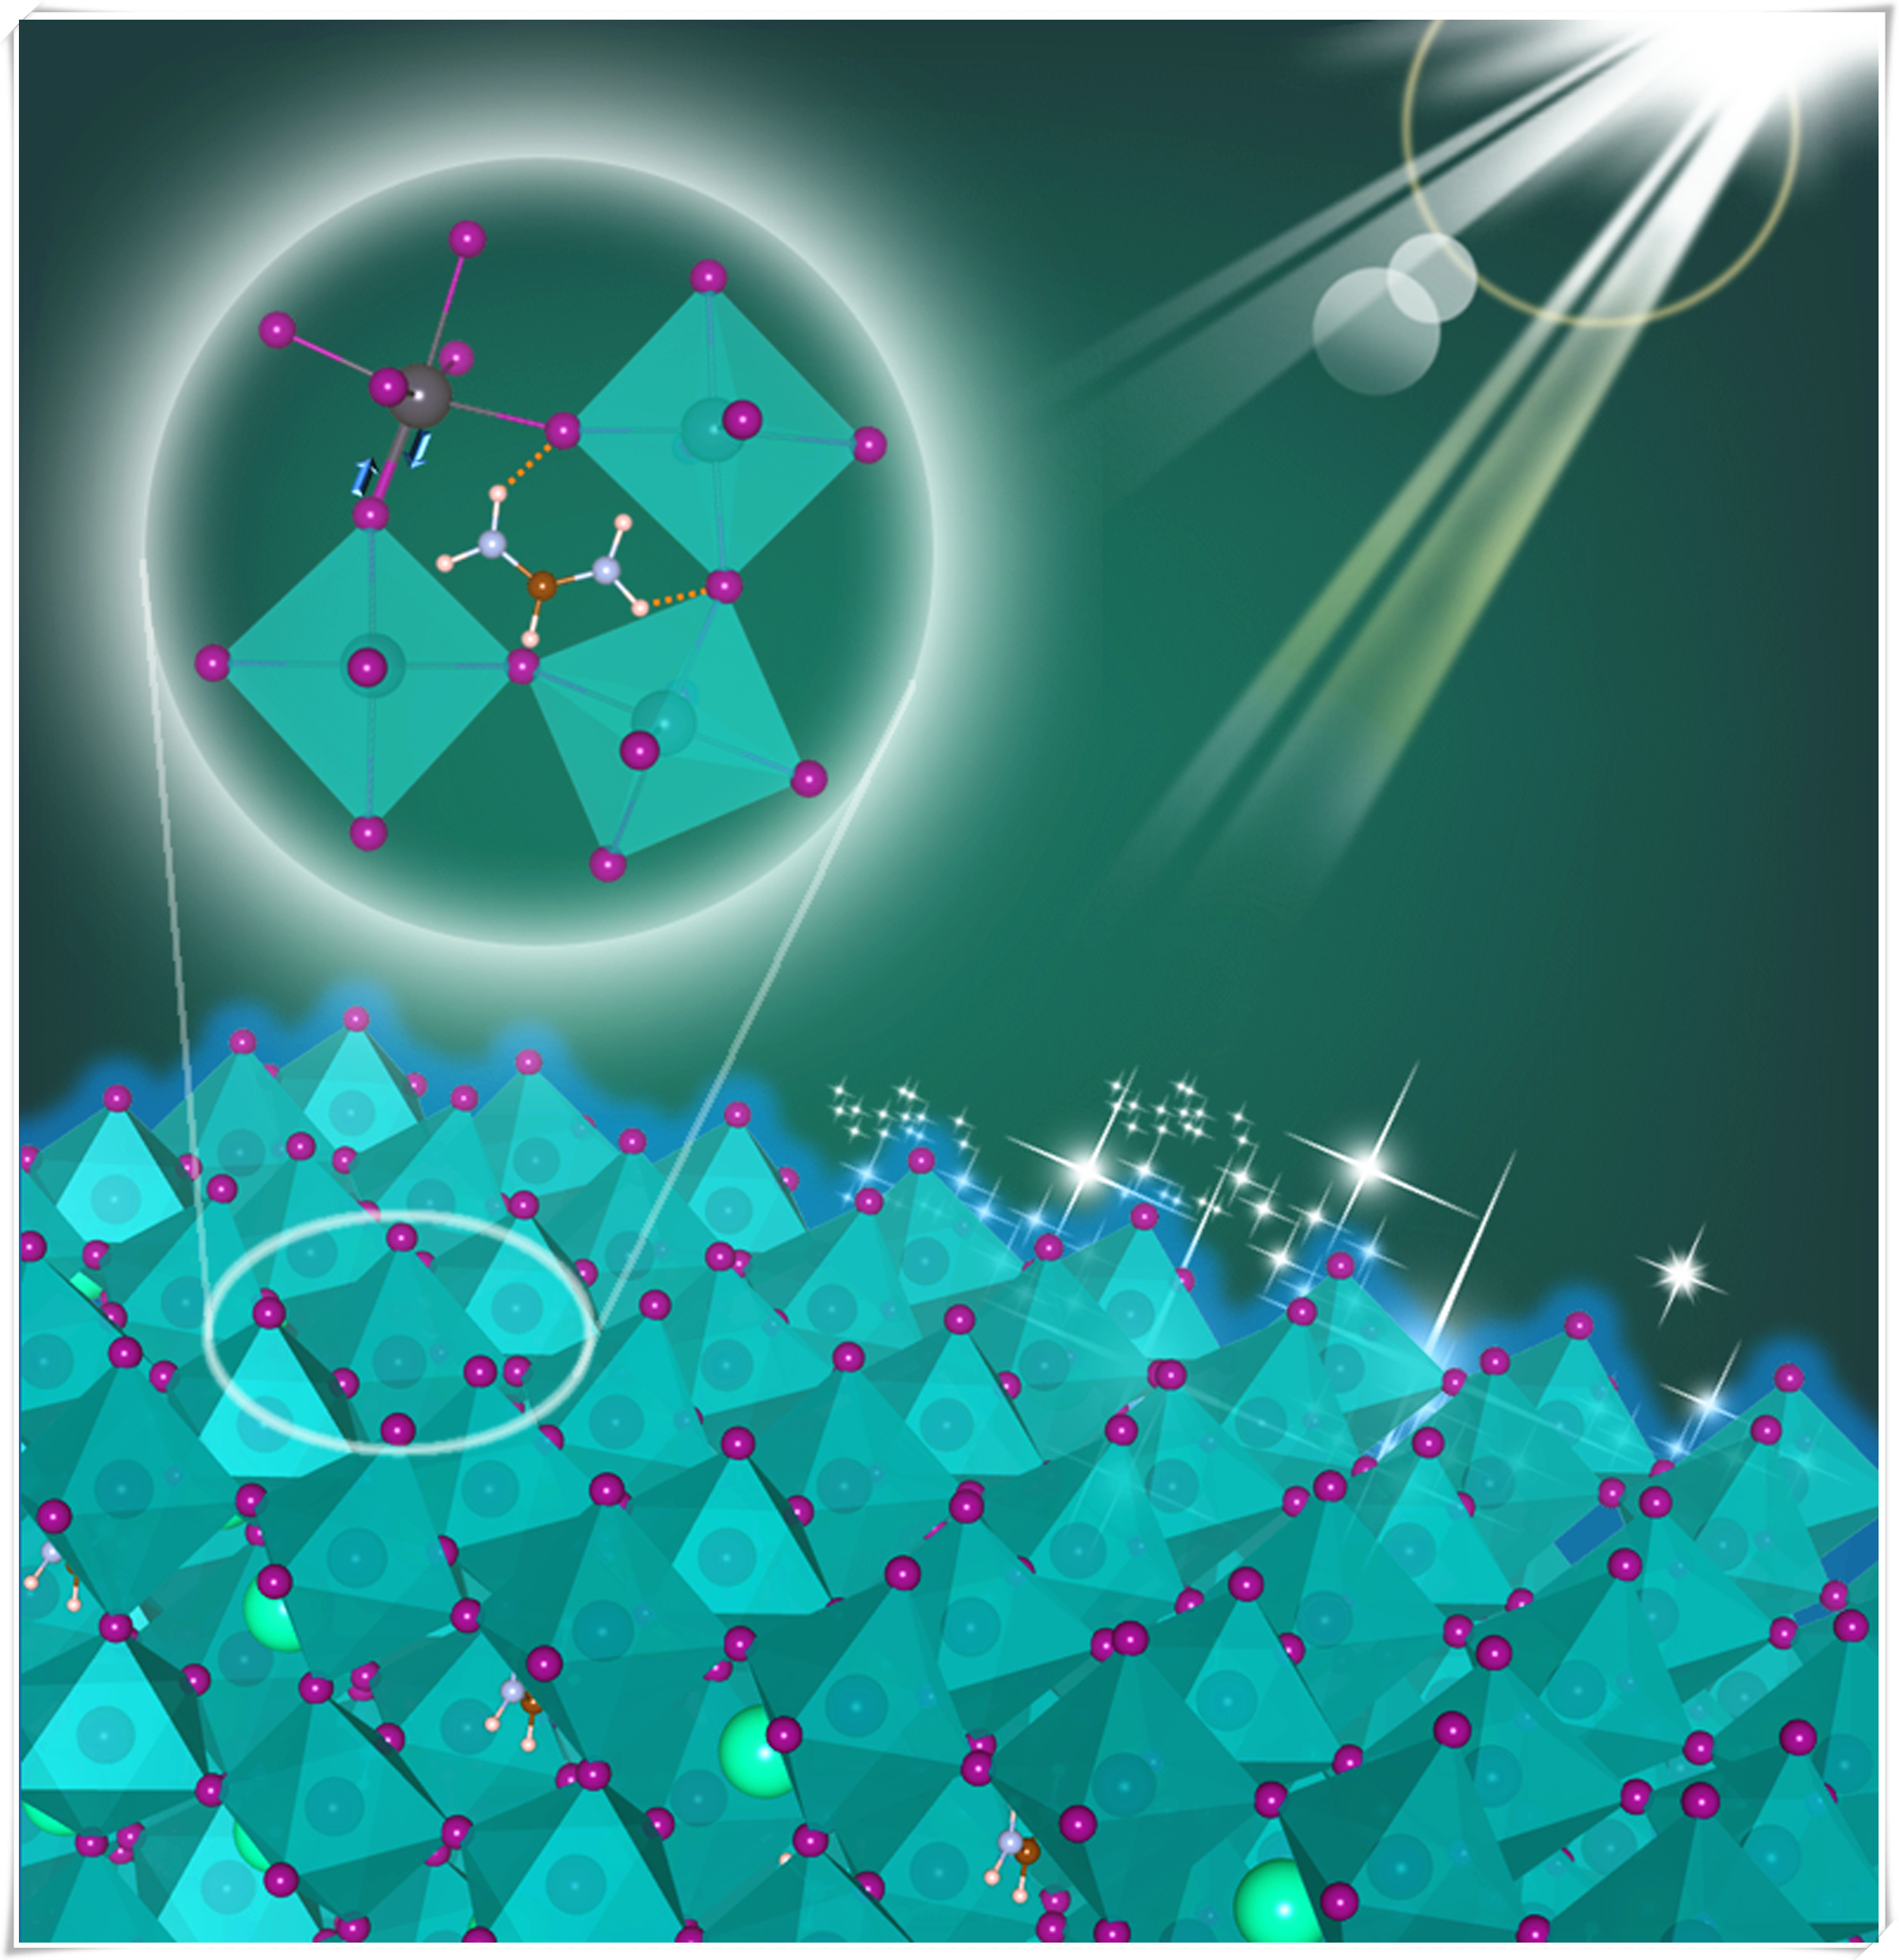 Phase stability of perovskites